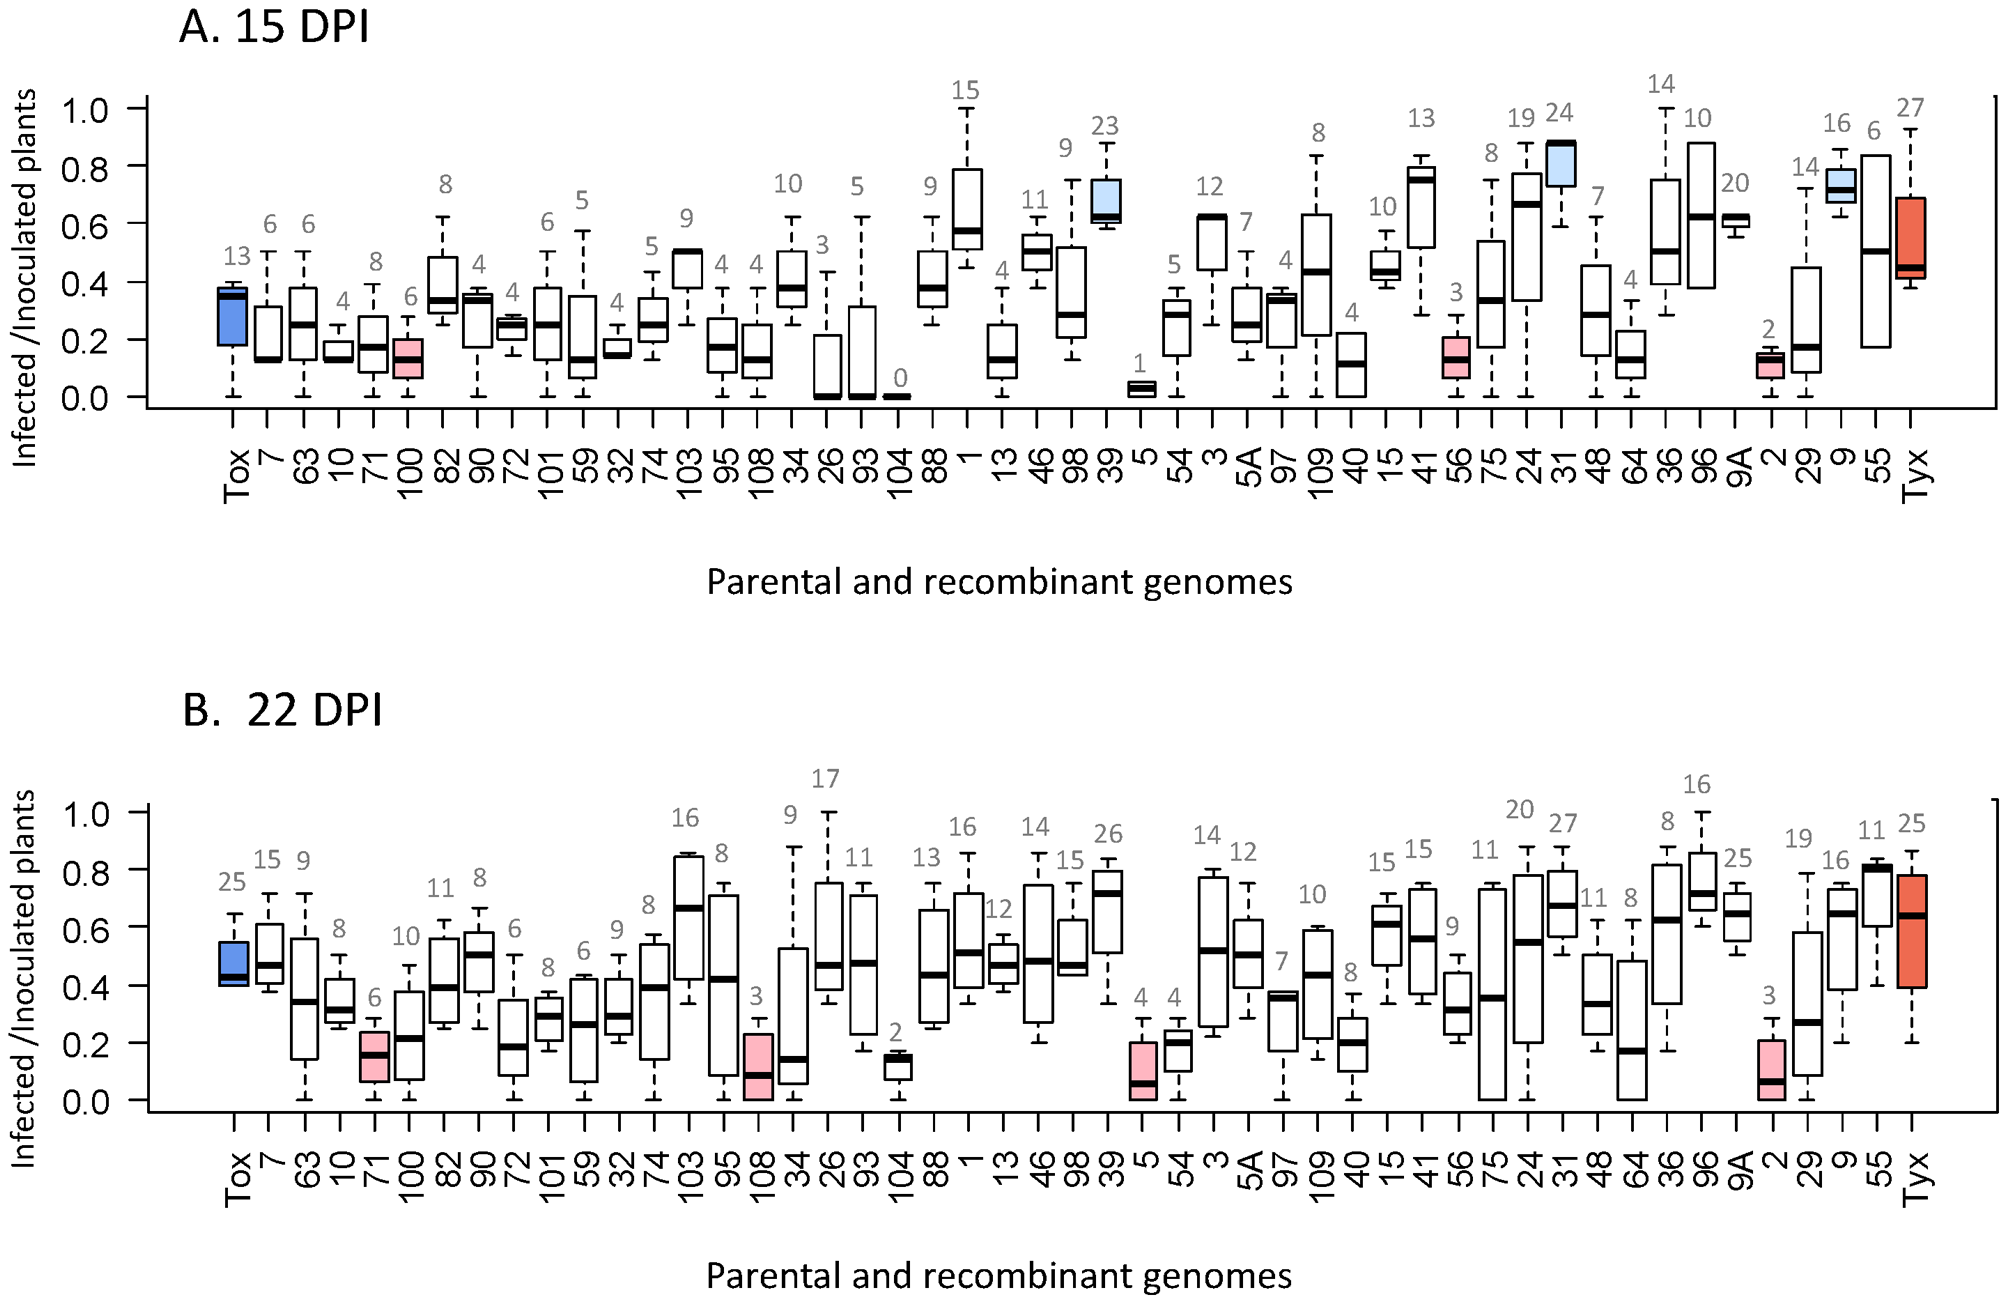 Infectivity of the 47 recombinants and their 2 parental genomes.